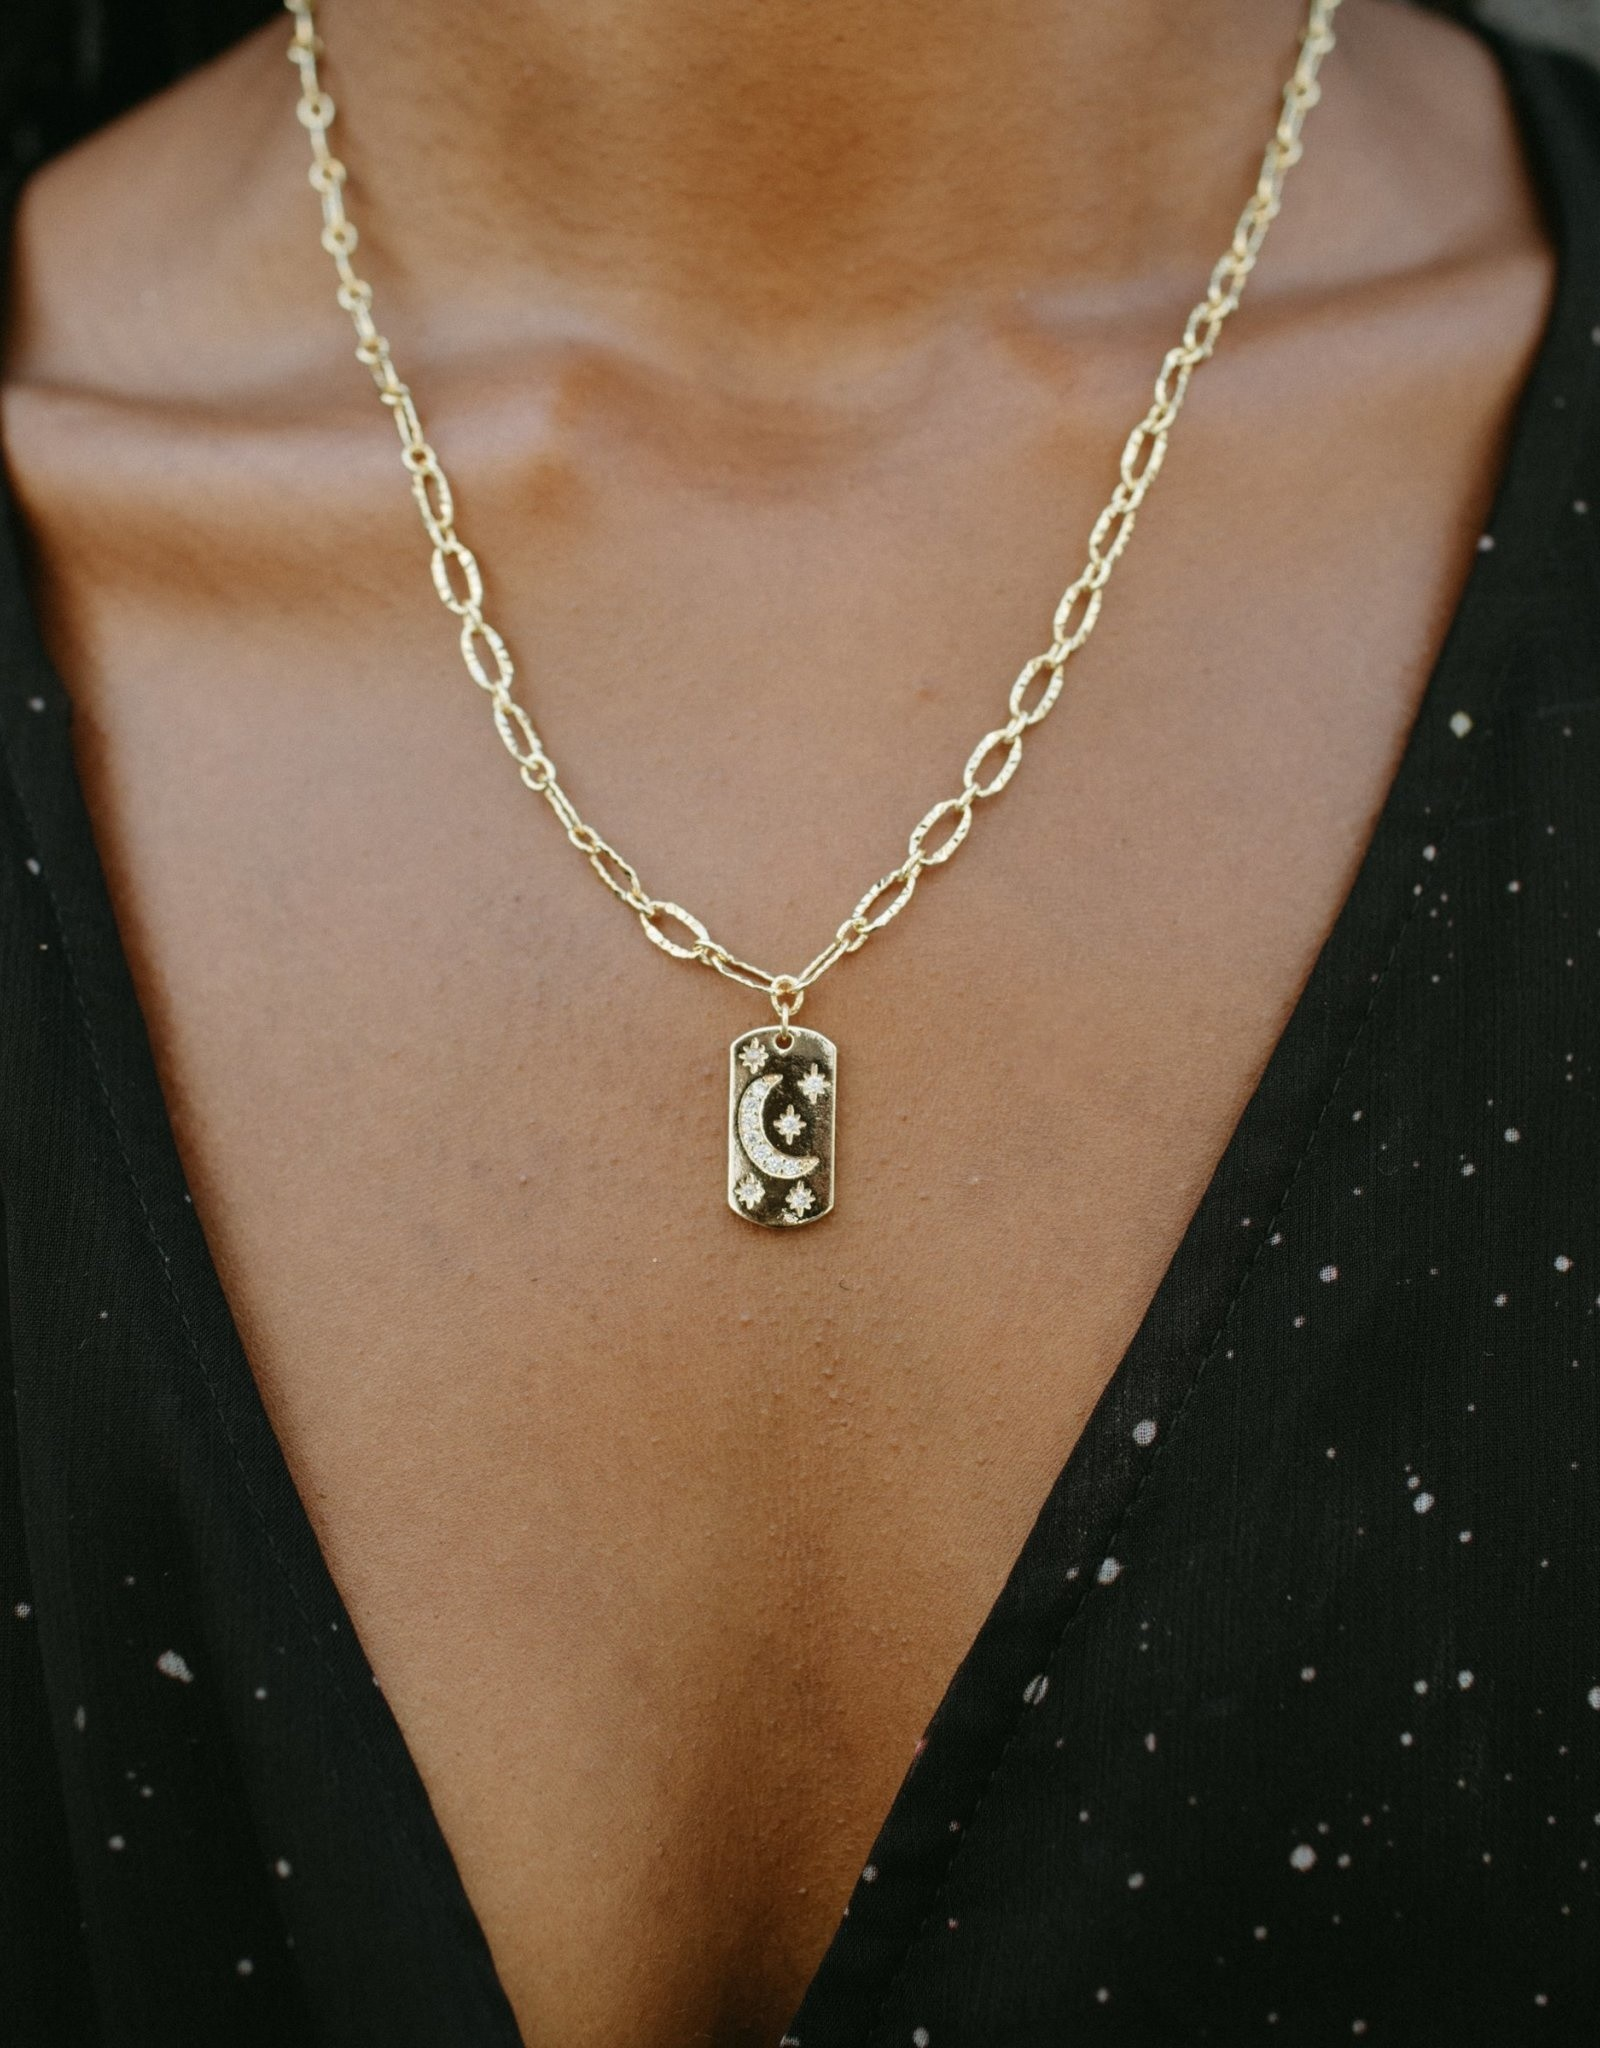 UNCVRD UNCVRD Constellation Mini Tag Necklace